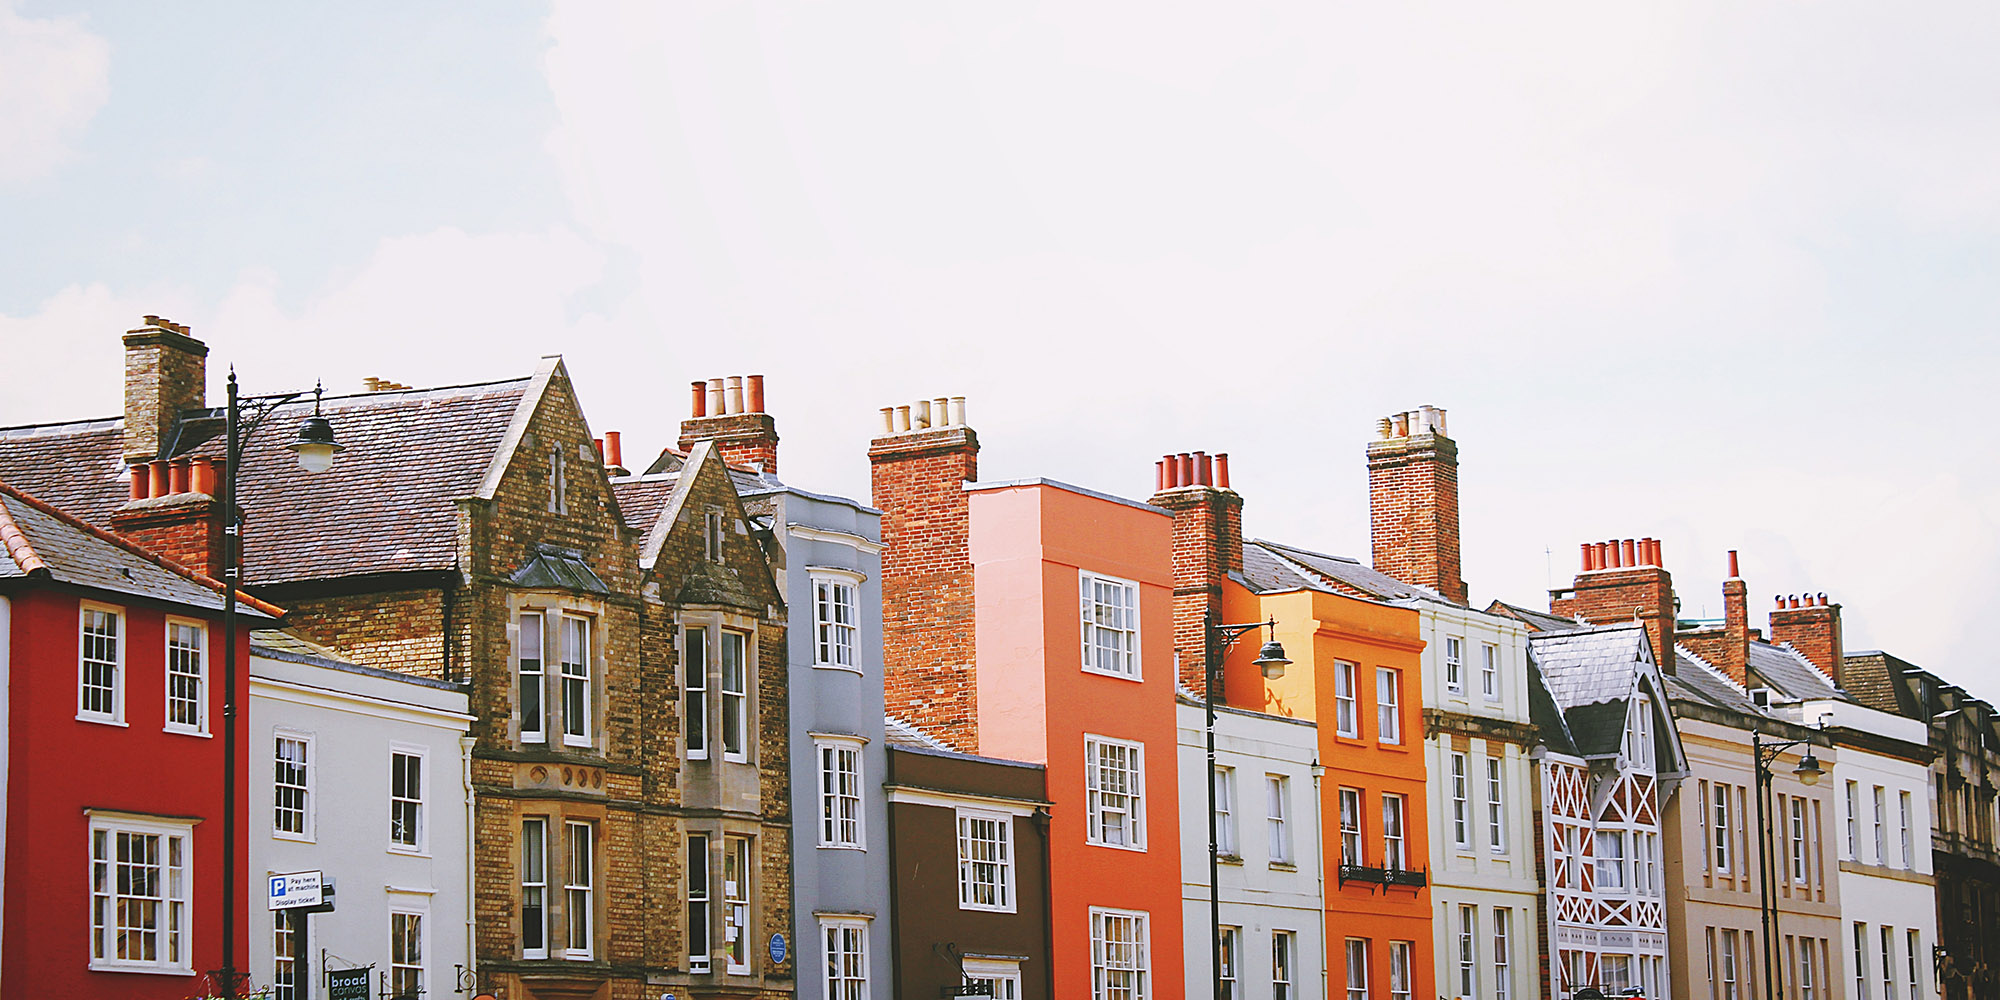 An image of a row of homes to represent our buy to let mortgage advisor service for landlords with multiple properties